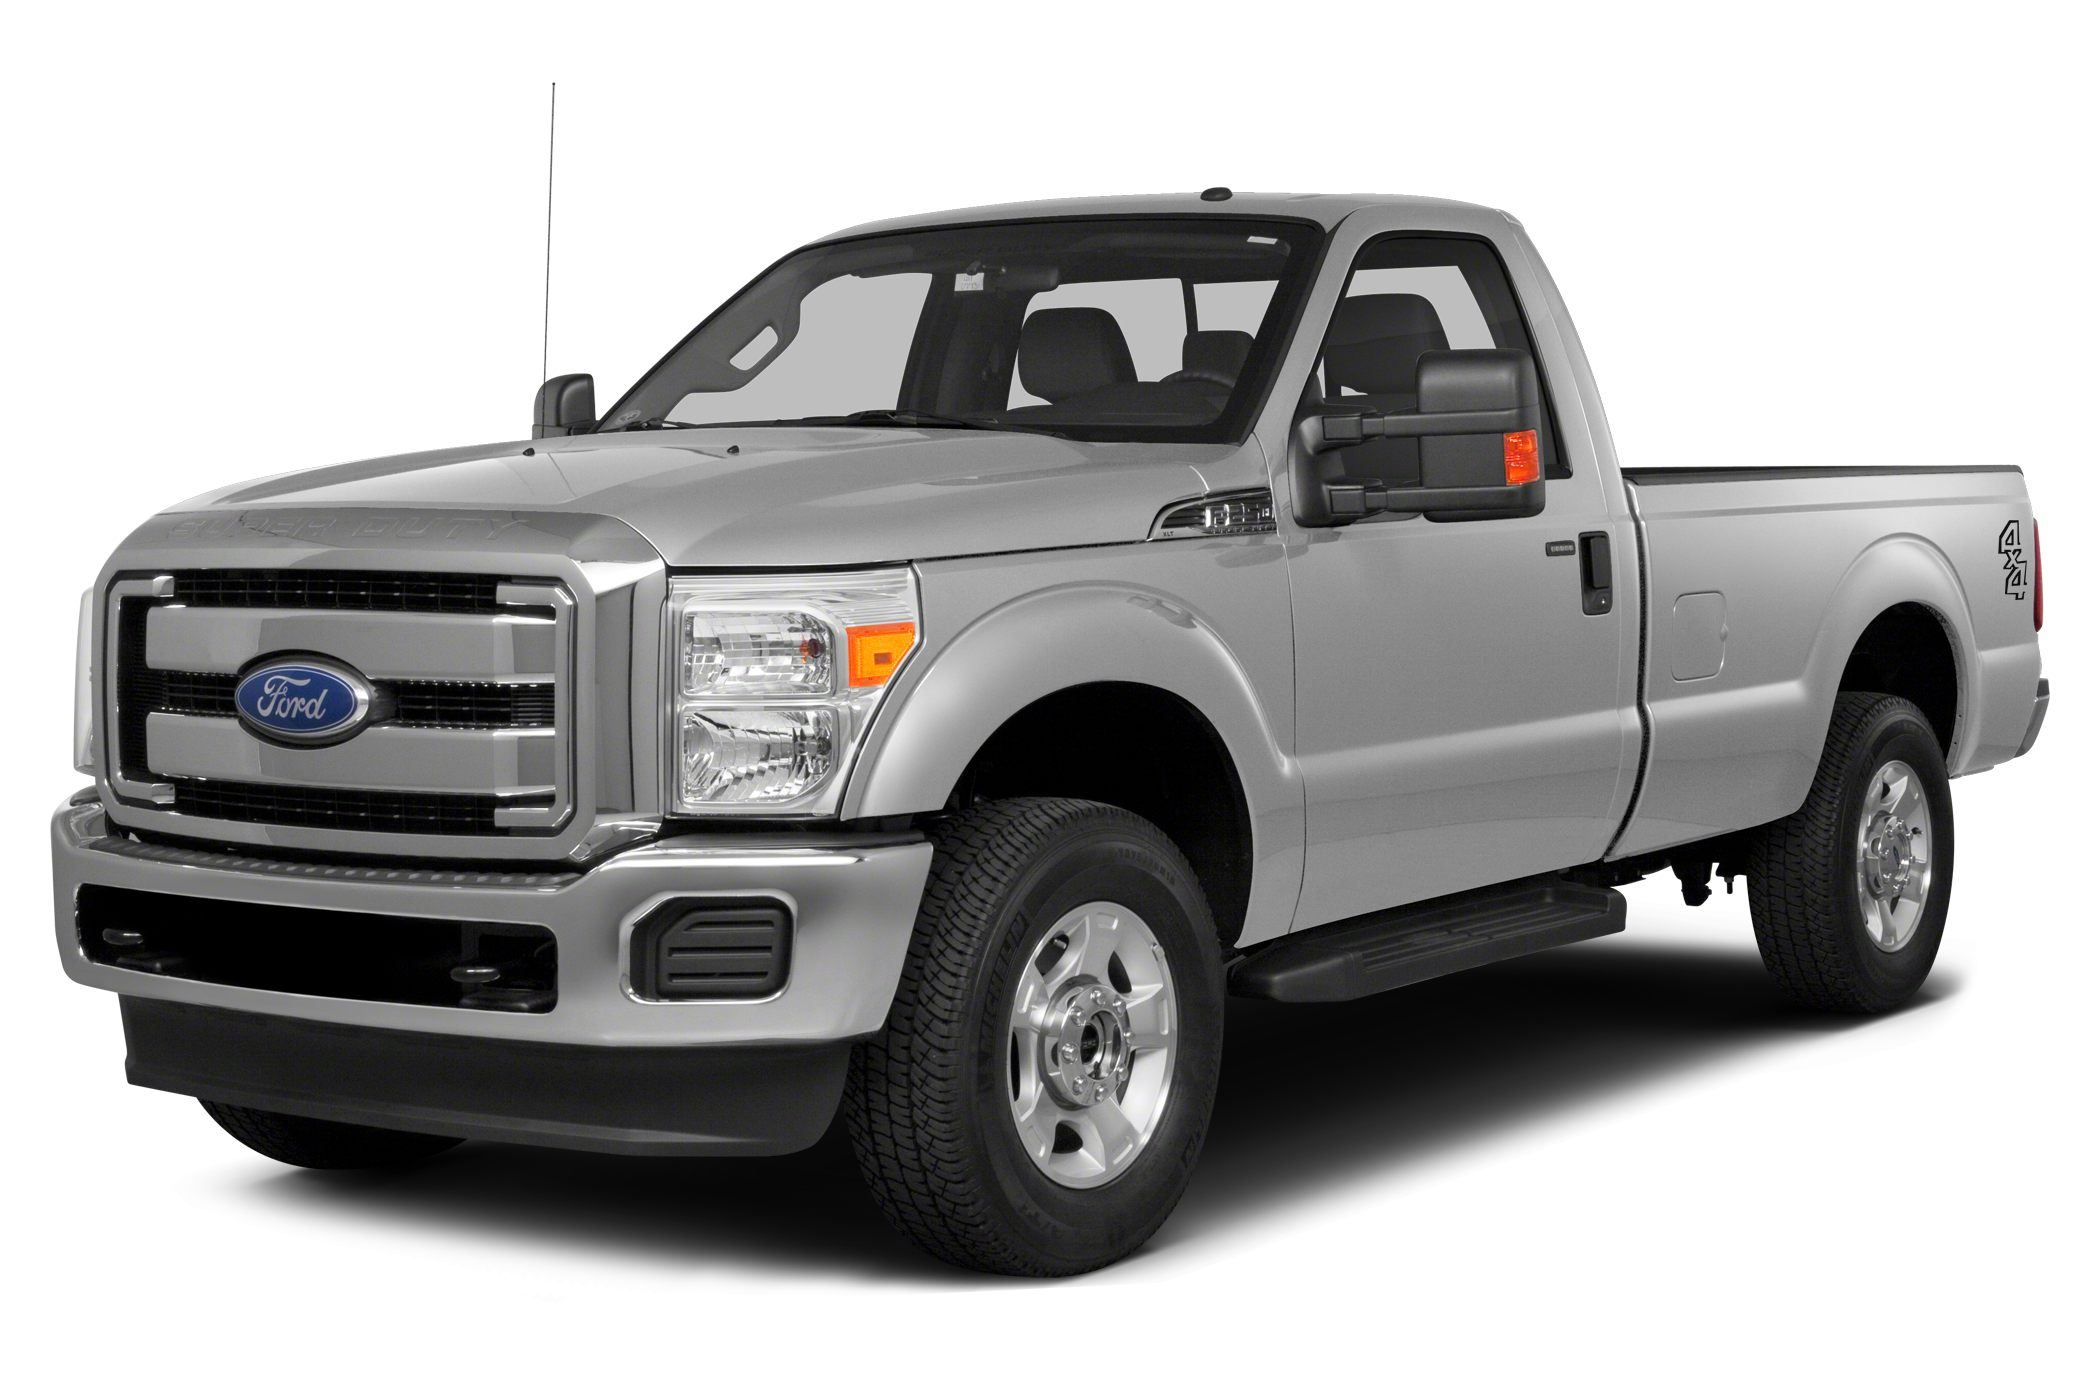 2015 Ford F250 XLT Extended Cab Pickup for sale in Reno for $45,855 with 8 miles.